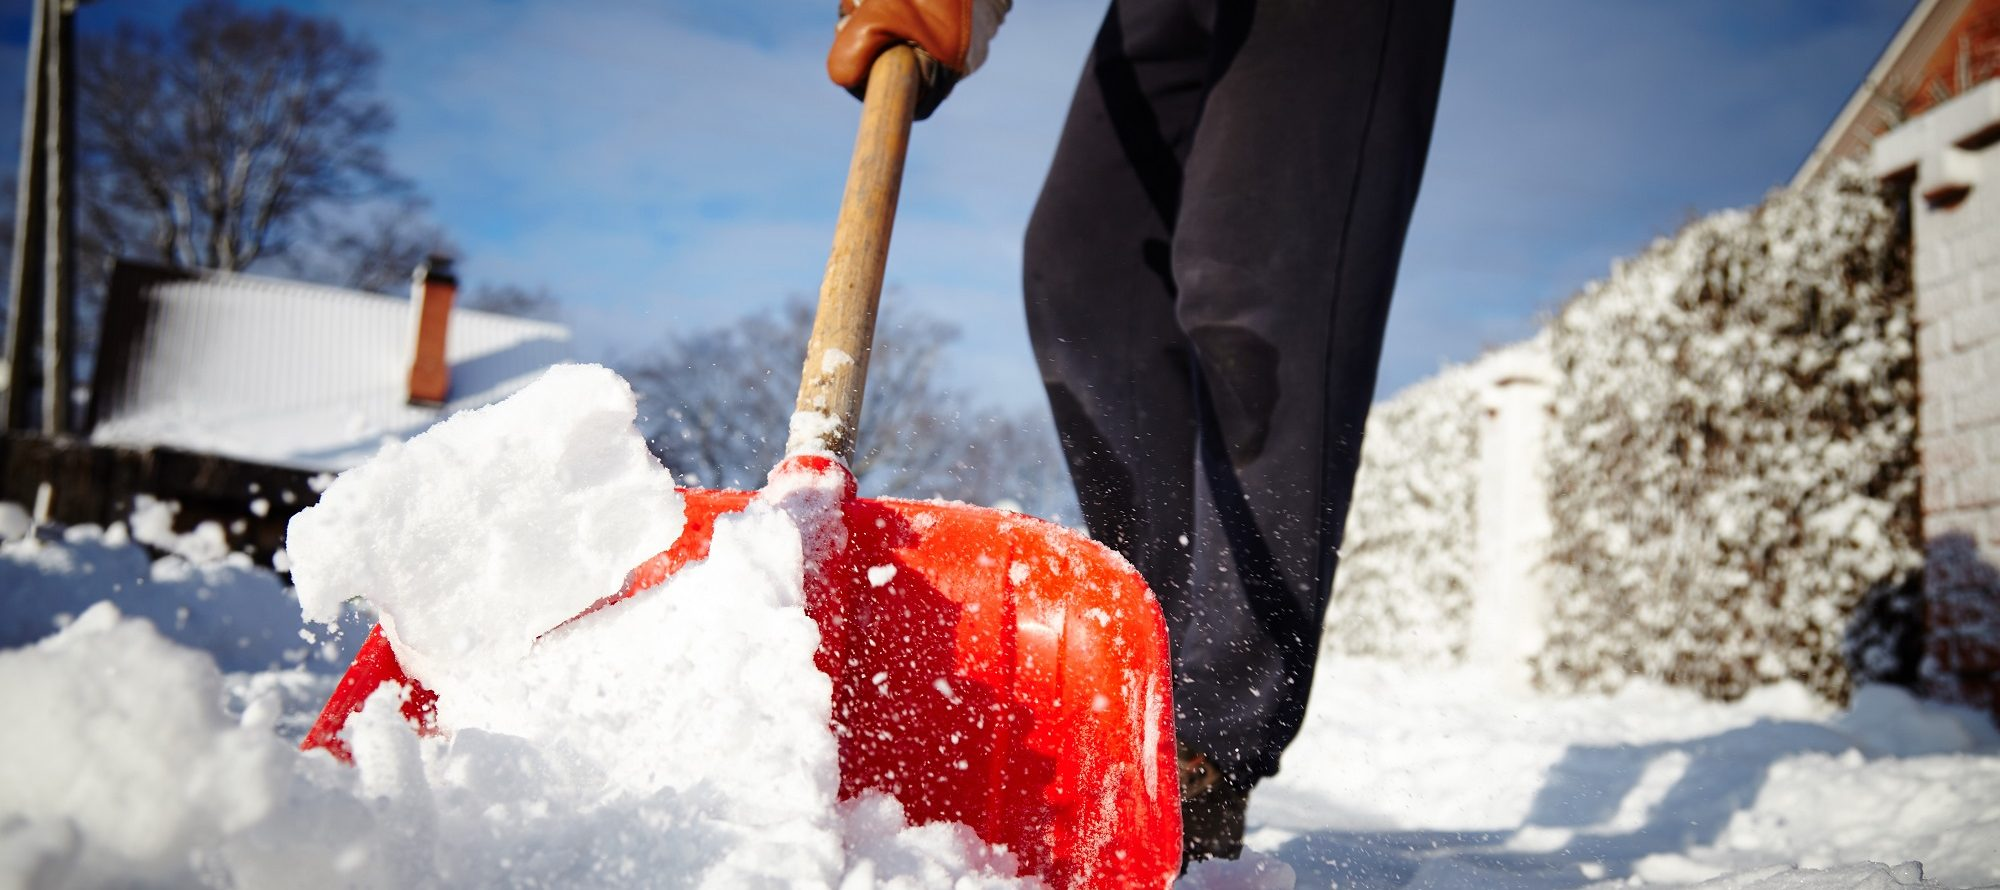 Ground level view of someone shoveling snow with a red shovel